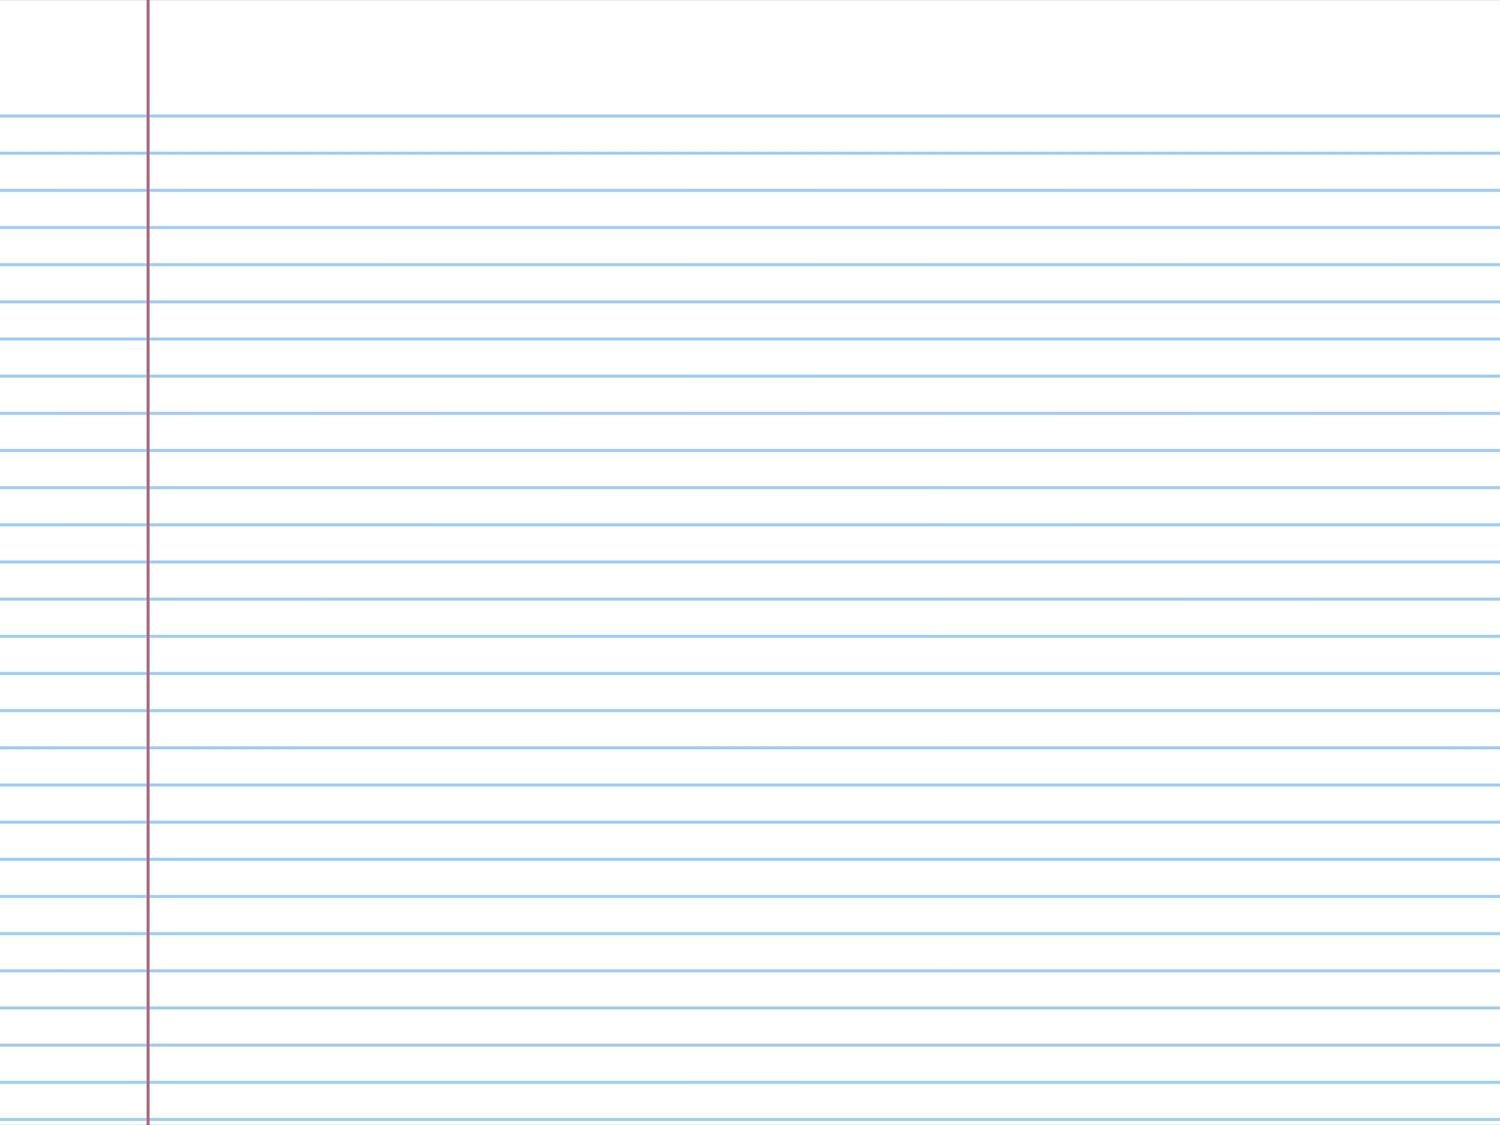 Notebook Paper Template For Word Radiotodorock